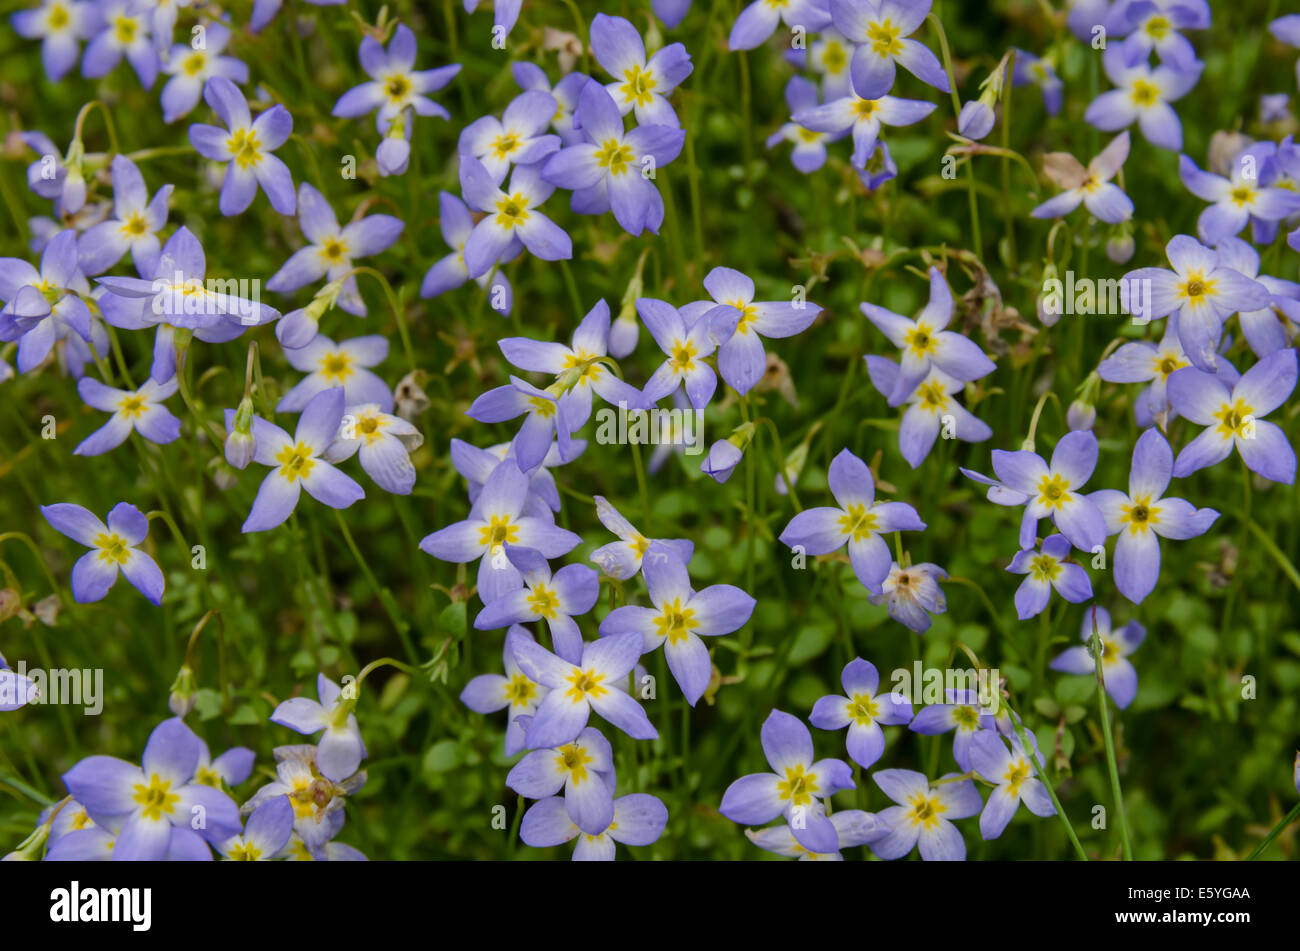 tiny purple flowers with yellow centers coat the sides of the, Beautiful flower